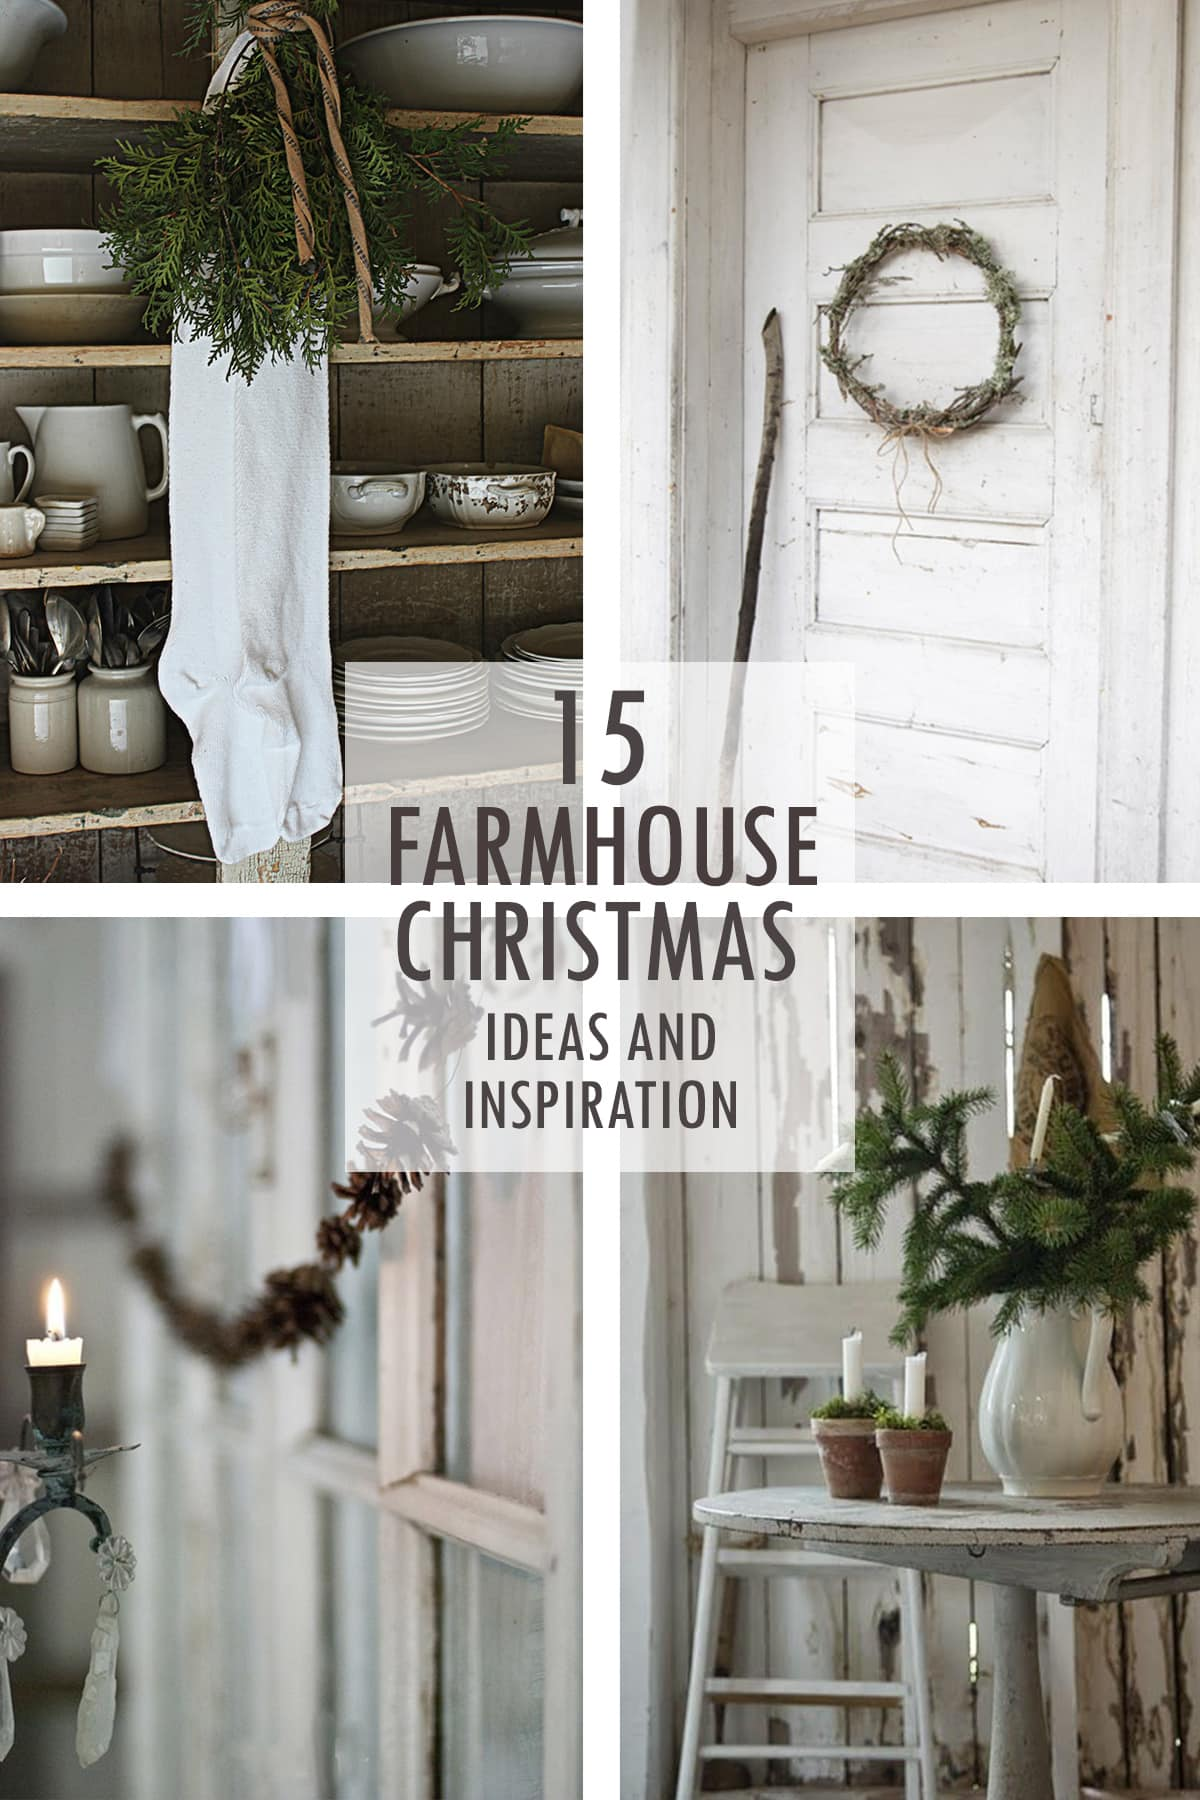 Farmhouse Christmas inspiration